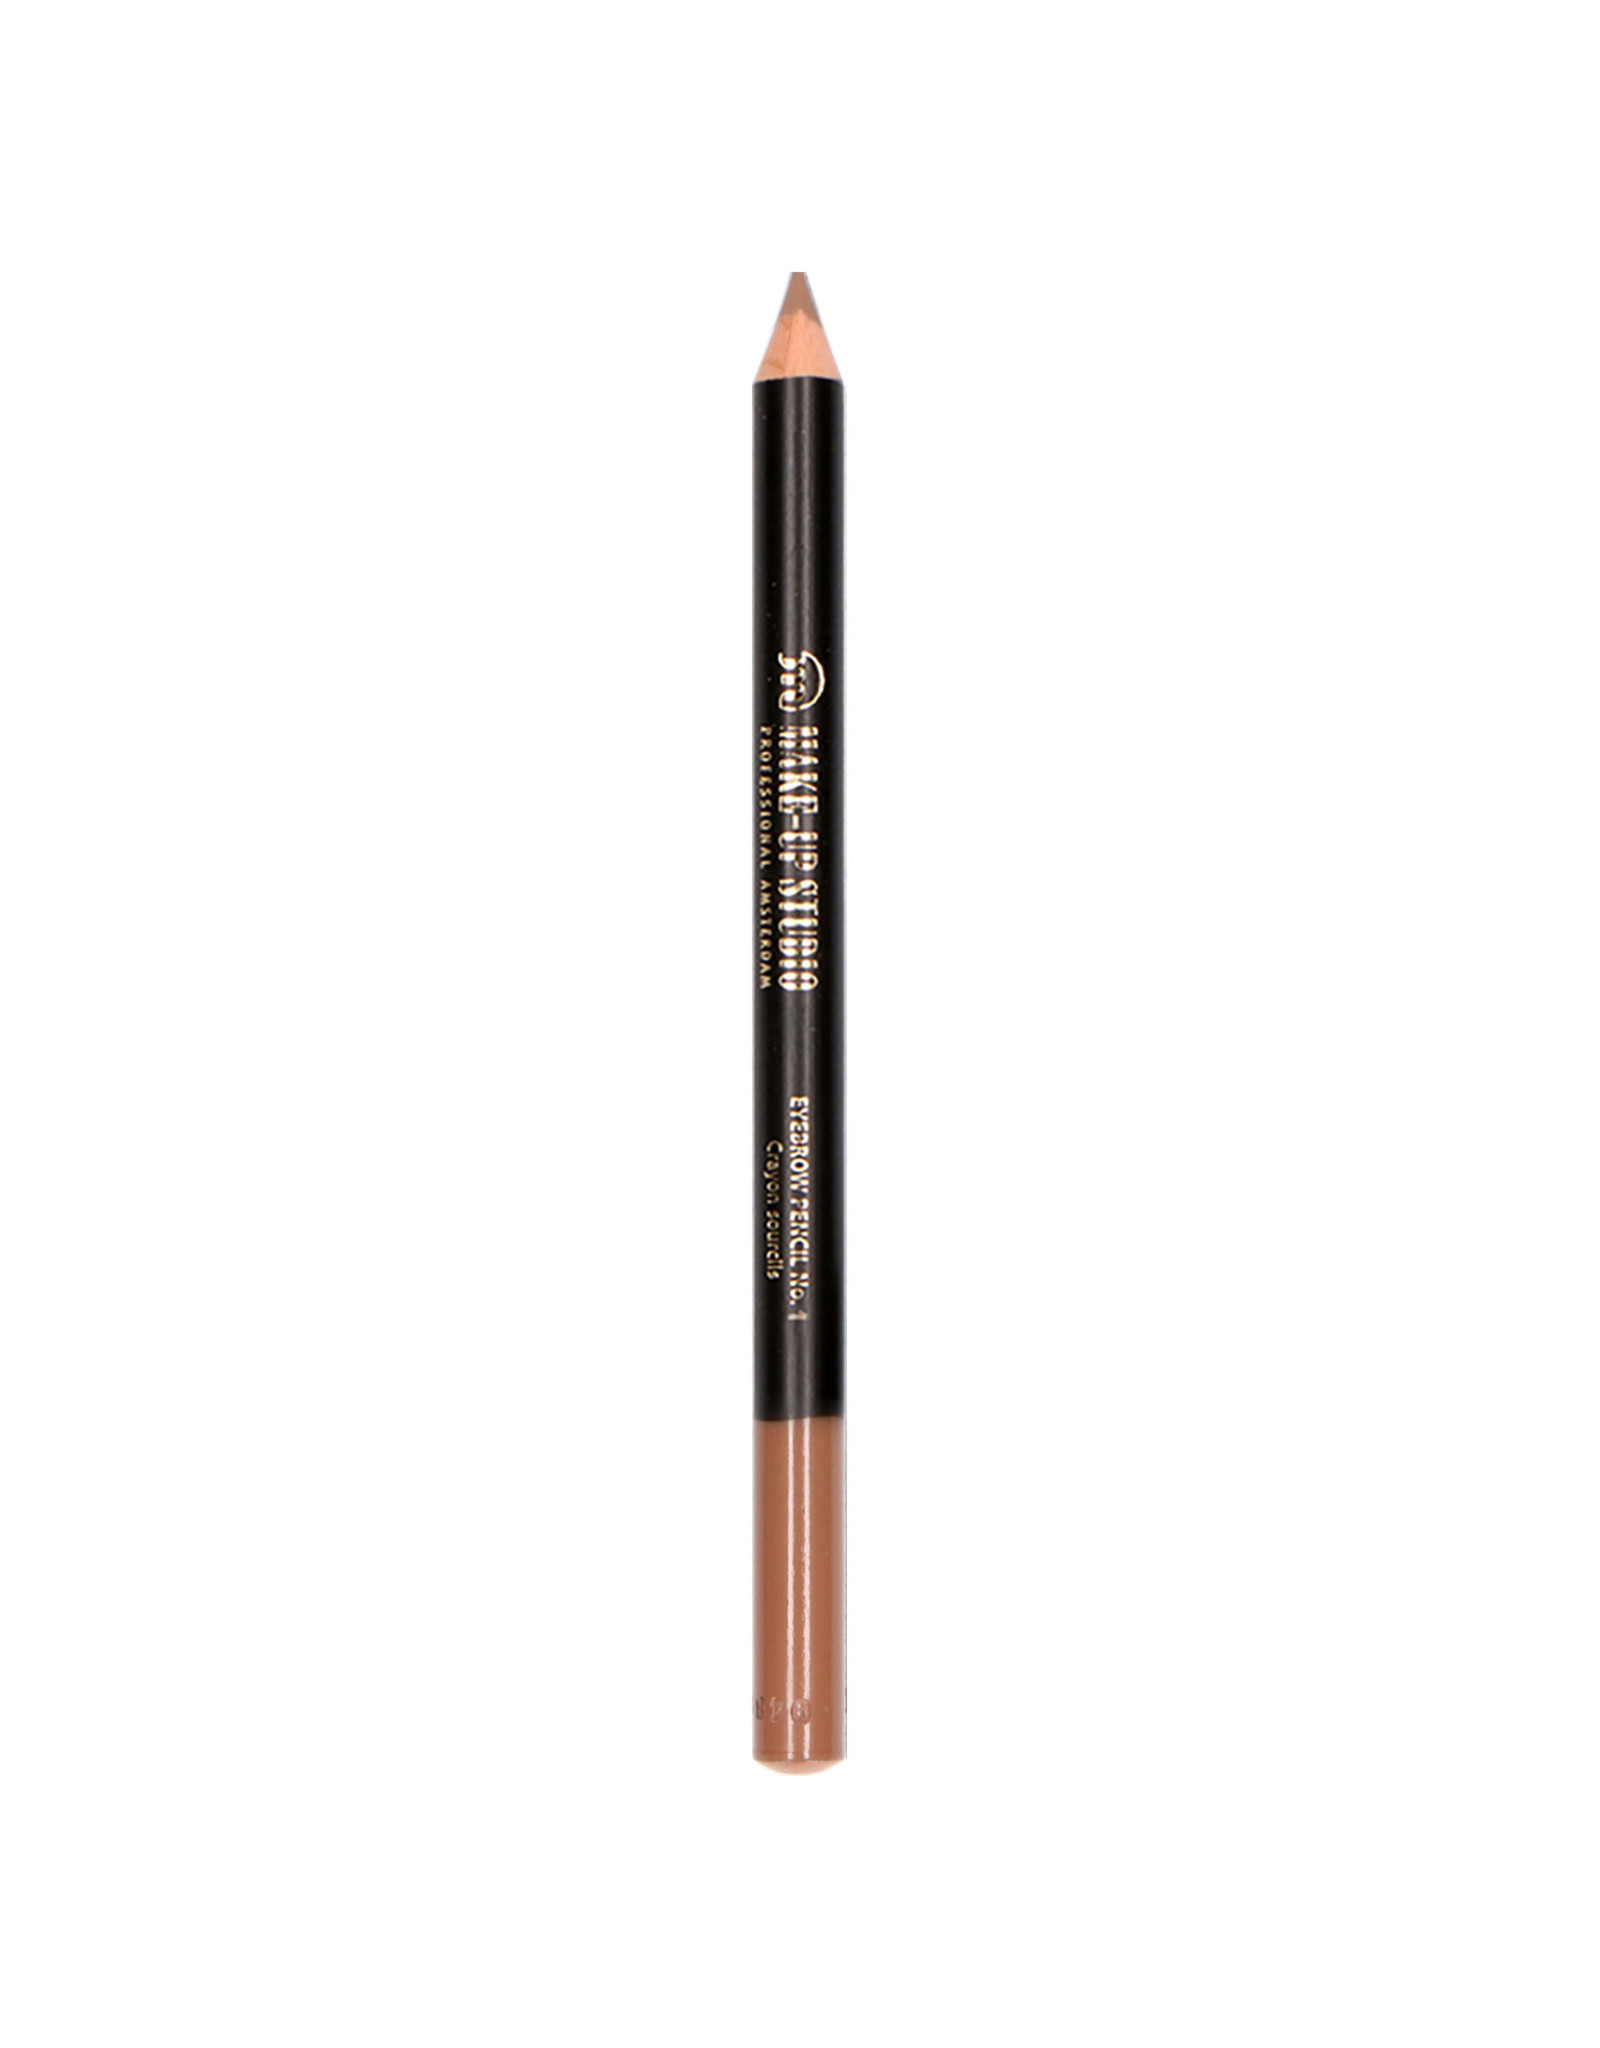 MAKE-UP STUDIO PENCIL EYEBROW 1